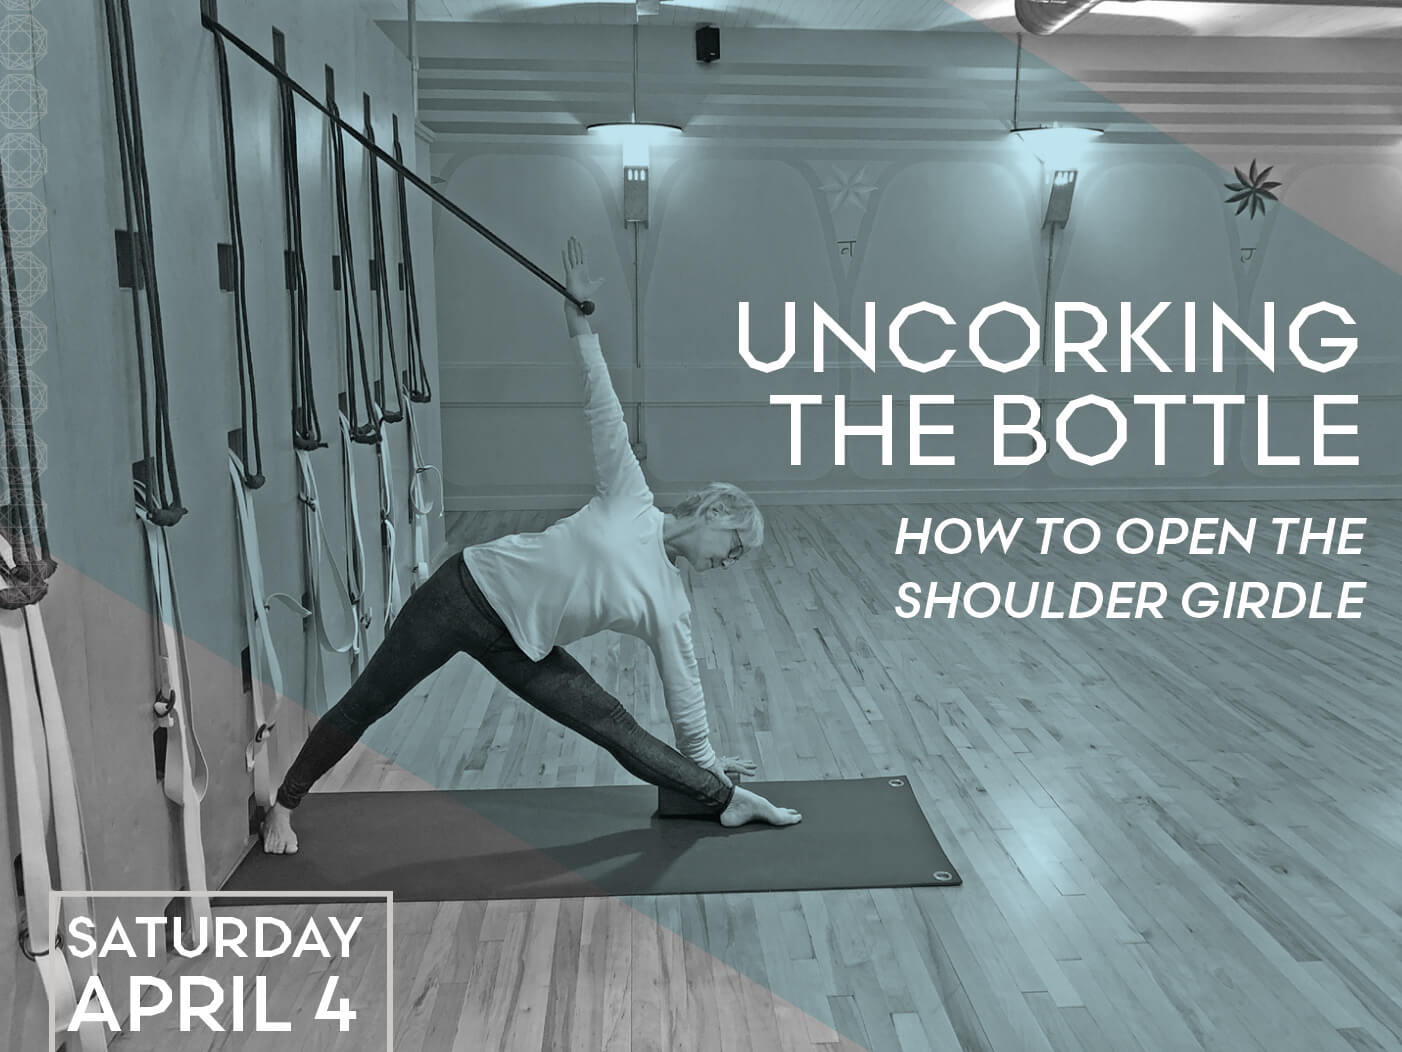 Uncorking the Bottle: How to Open the Shoulder Girdle